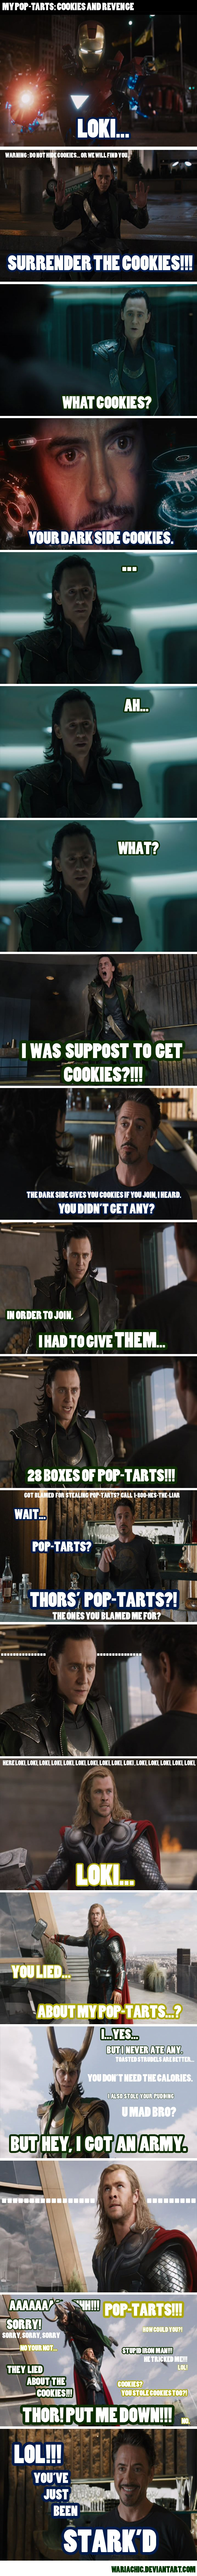 i would have given tom hiddleston cookies.... and plus, this dialogue is better than the original.... except the 'i am burdened with a glorious purpose' which reminds me of steve martin in 'the jerk' ... remember his 'special purpose?' lol